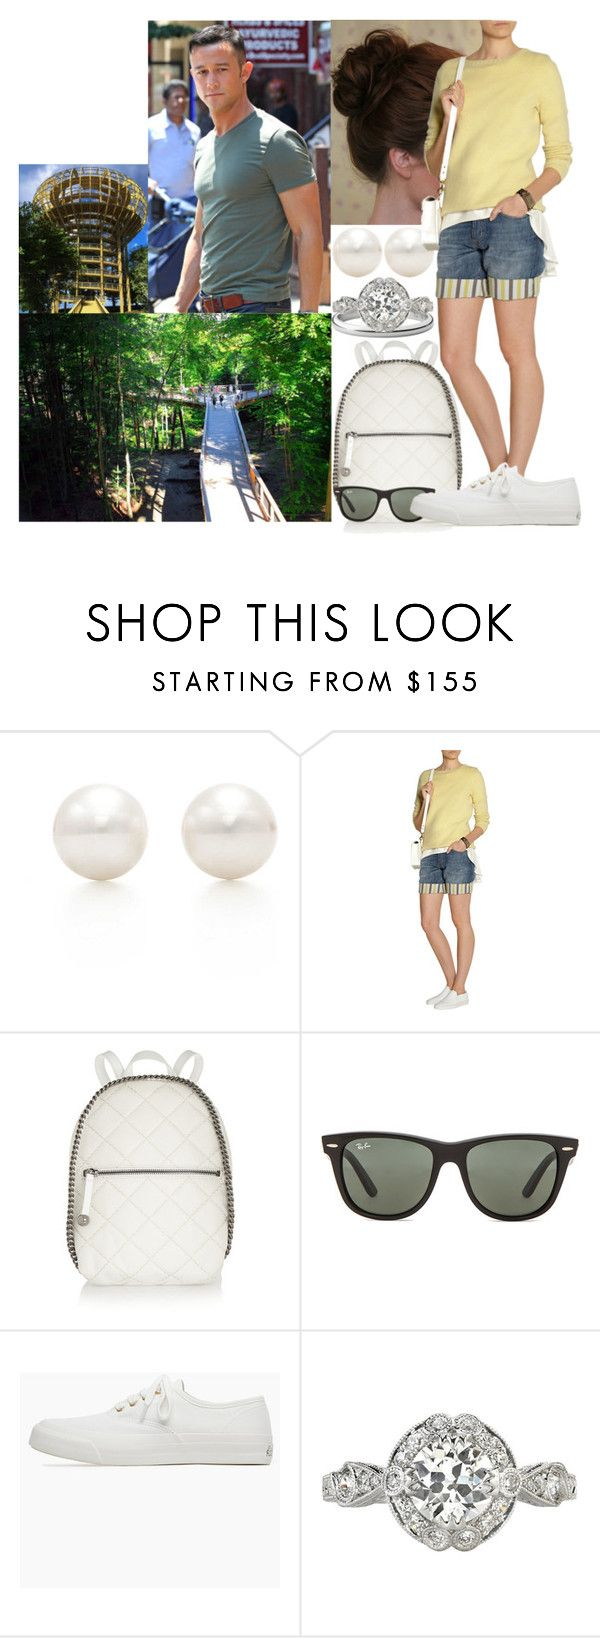 """""""Honeymoon Day 2: Going for a walk through the Natural Heritage Centre Rügen"""" by astridavhessenstein ❤ liked on Polyvore featuring Tiffany & Co., Marni, STELLA McCARTNEY, Ray-Ban, Maison Kitsuné, women's clothing, women's fashion, women, female and woman"""